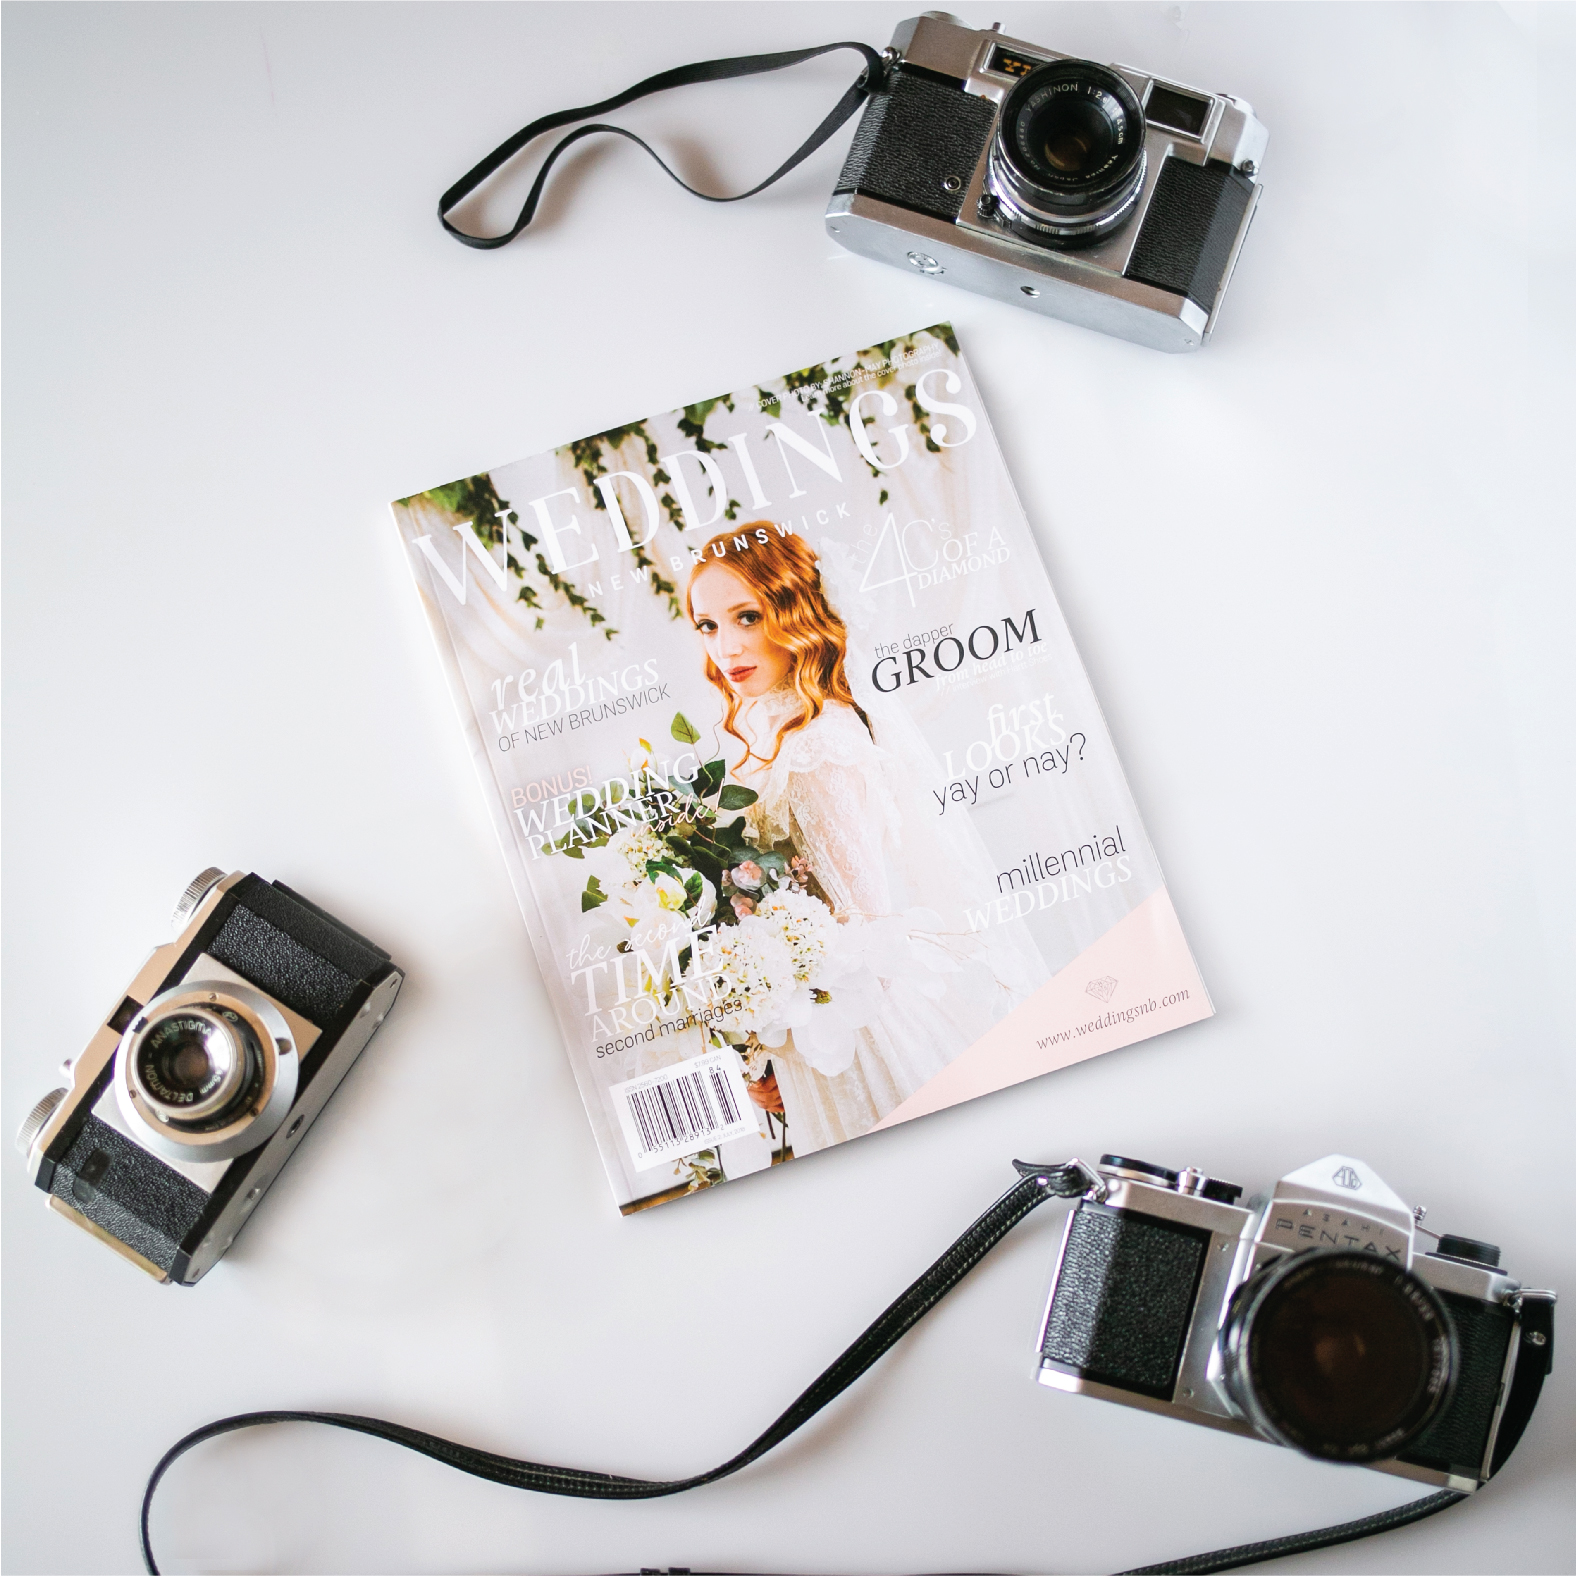 Have you collaborated with other talented vendors in our industry on a stylized shoot to showcase your talents/products at their best?  Submit your Stylized Session to: creative@weddingsatlantic.com to be featured on our website and/or in an upcoming issue of Weddings Atlantic Magazine.